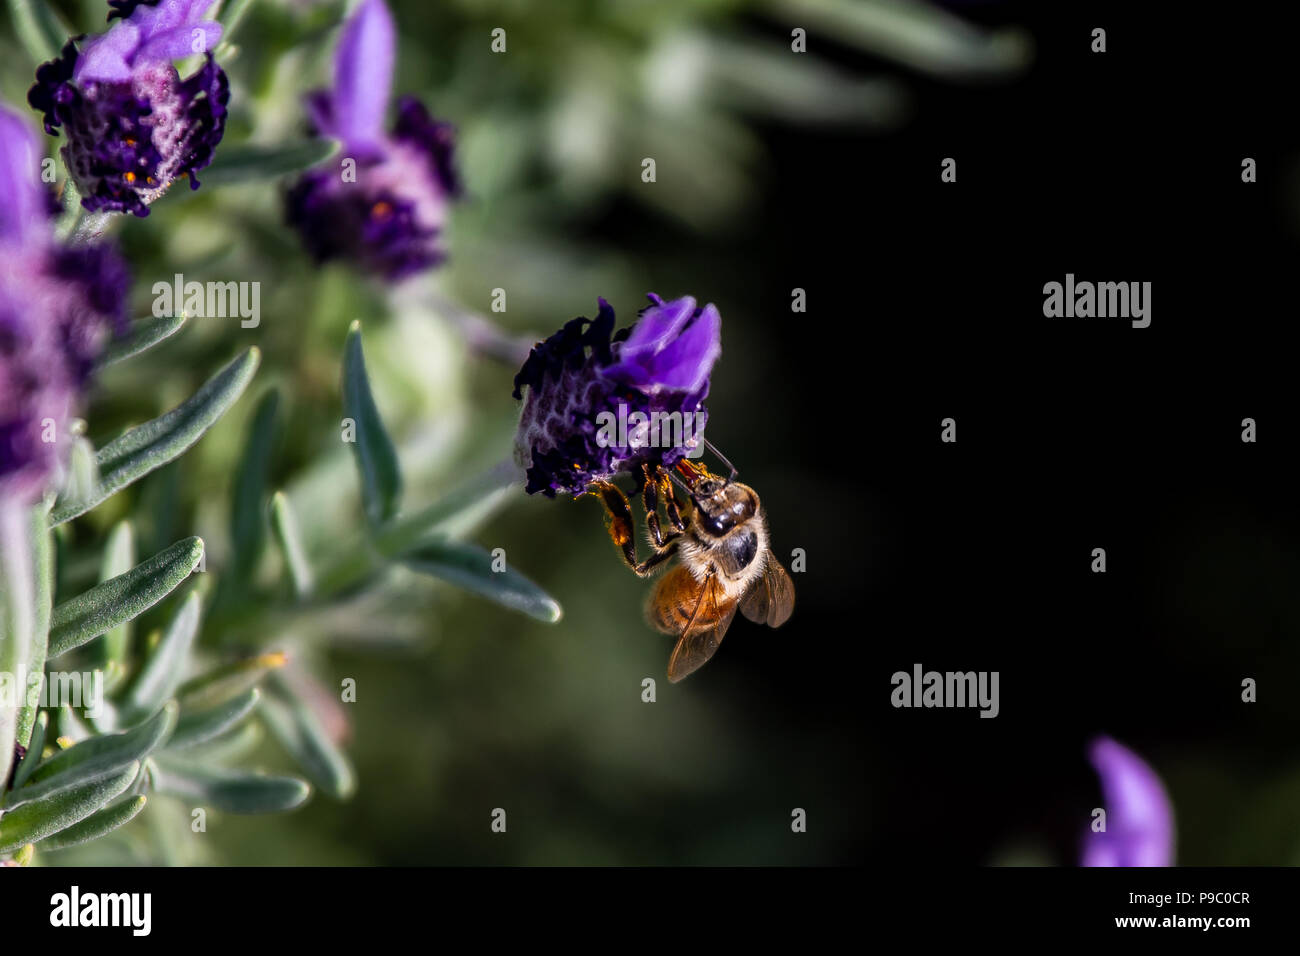 a hungry honey bee visits budding rosemary flowers in Yamashita park in Yokohama in late spring. - Stock Image